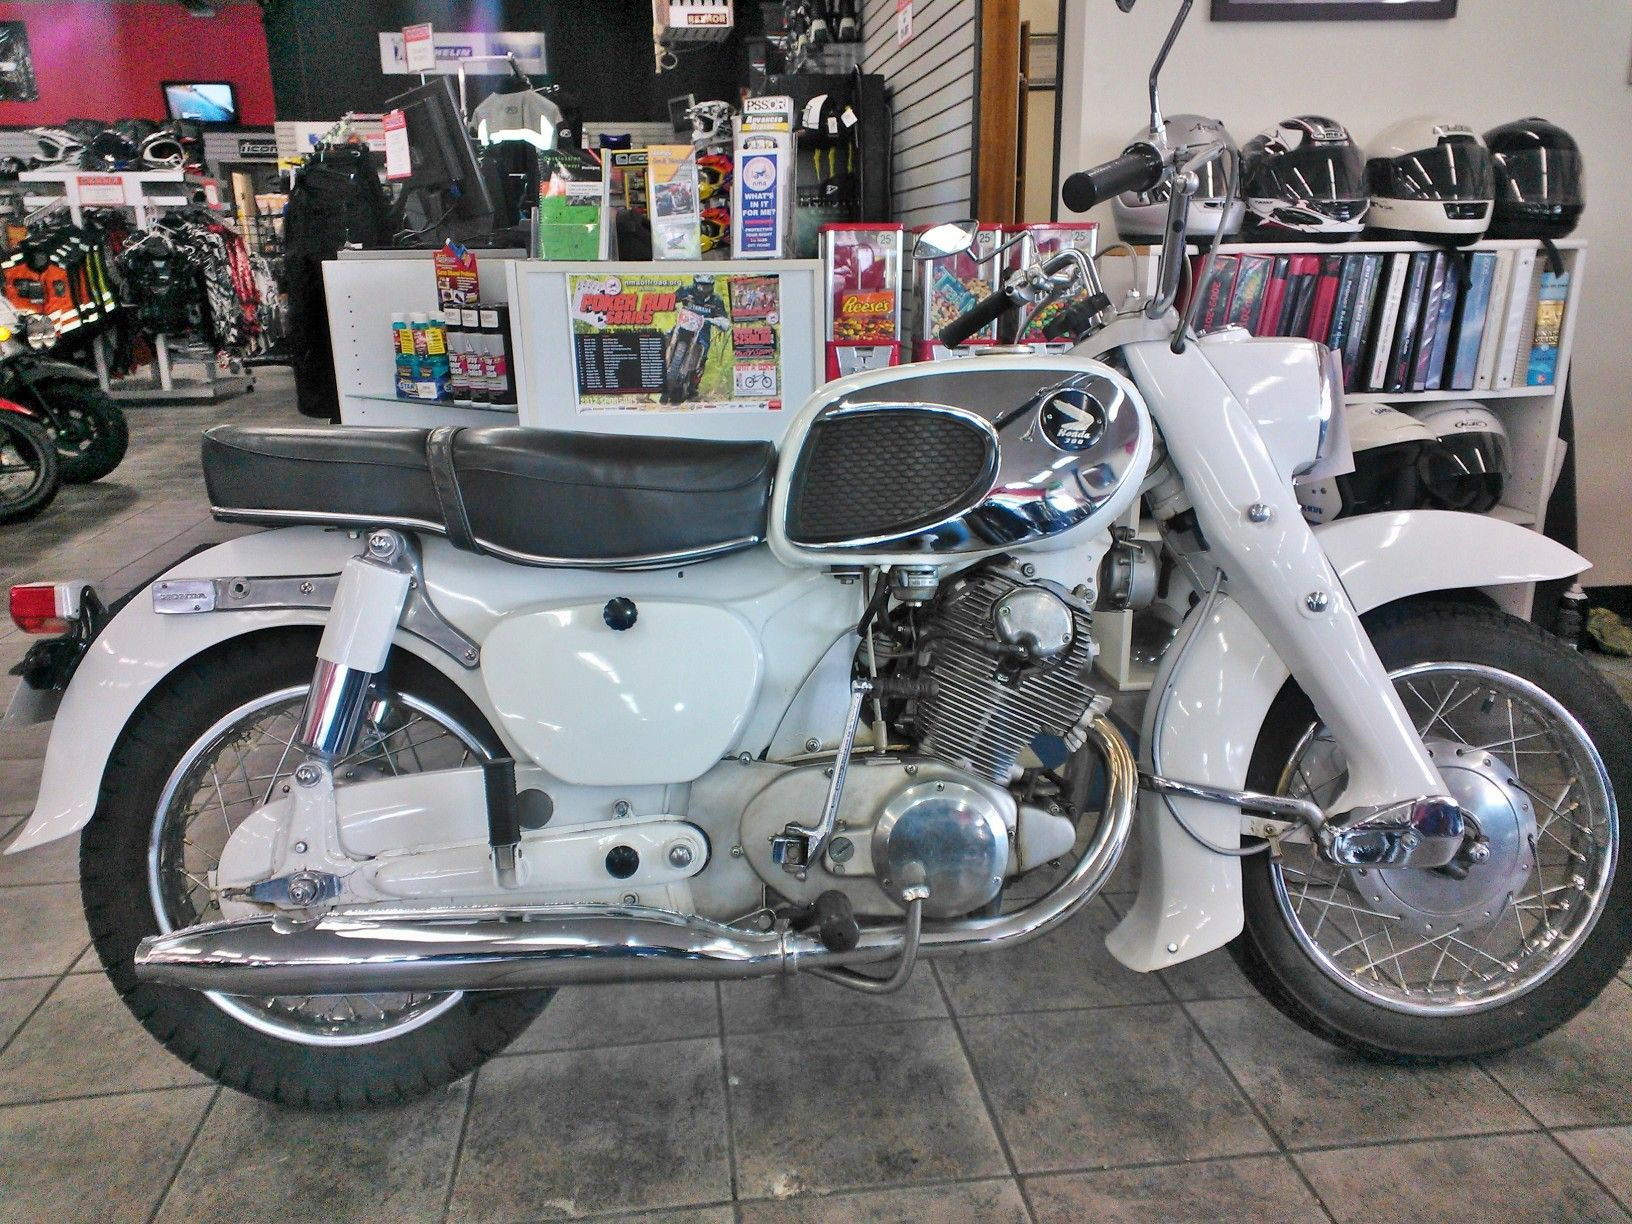 What A Great Vintage Motorcycle A 1967 Honda 305cc Dream Show Bike With Only 1 200 Miles On It Kell Honda Motorcycles Vintage Honda Motorcycles Honda Bikes